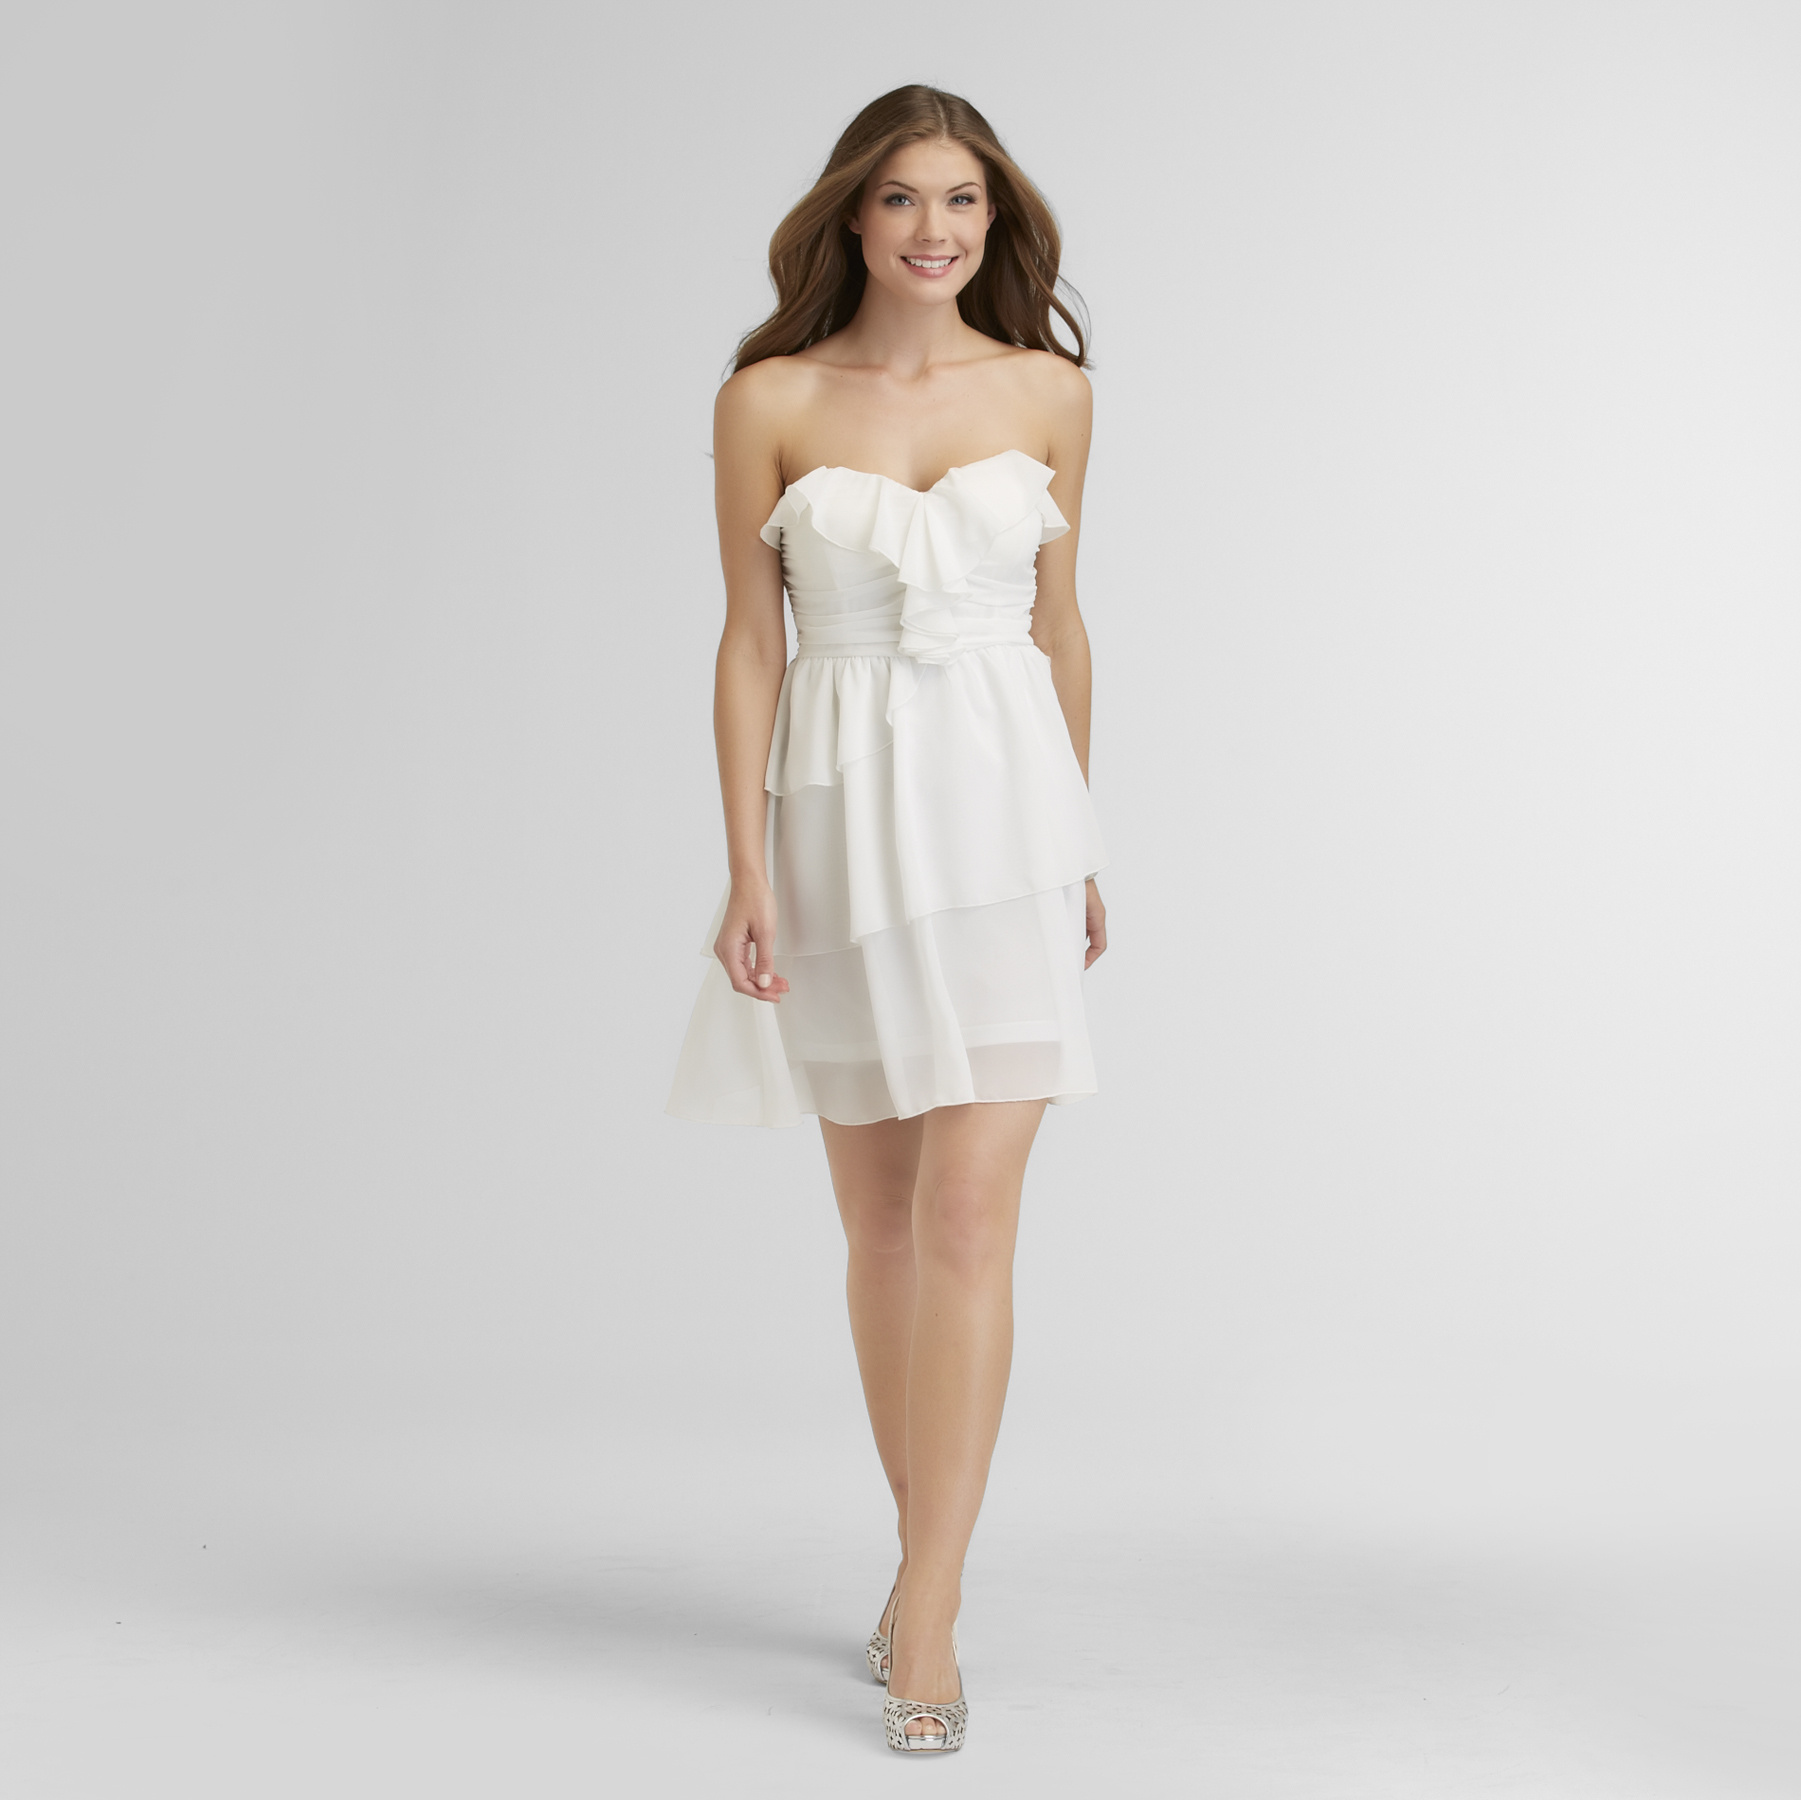 New Look Women's Tiered Chiffon Party Dress at Sears.com